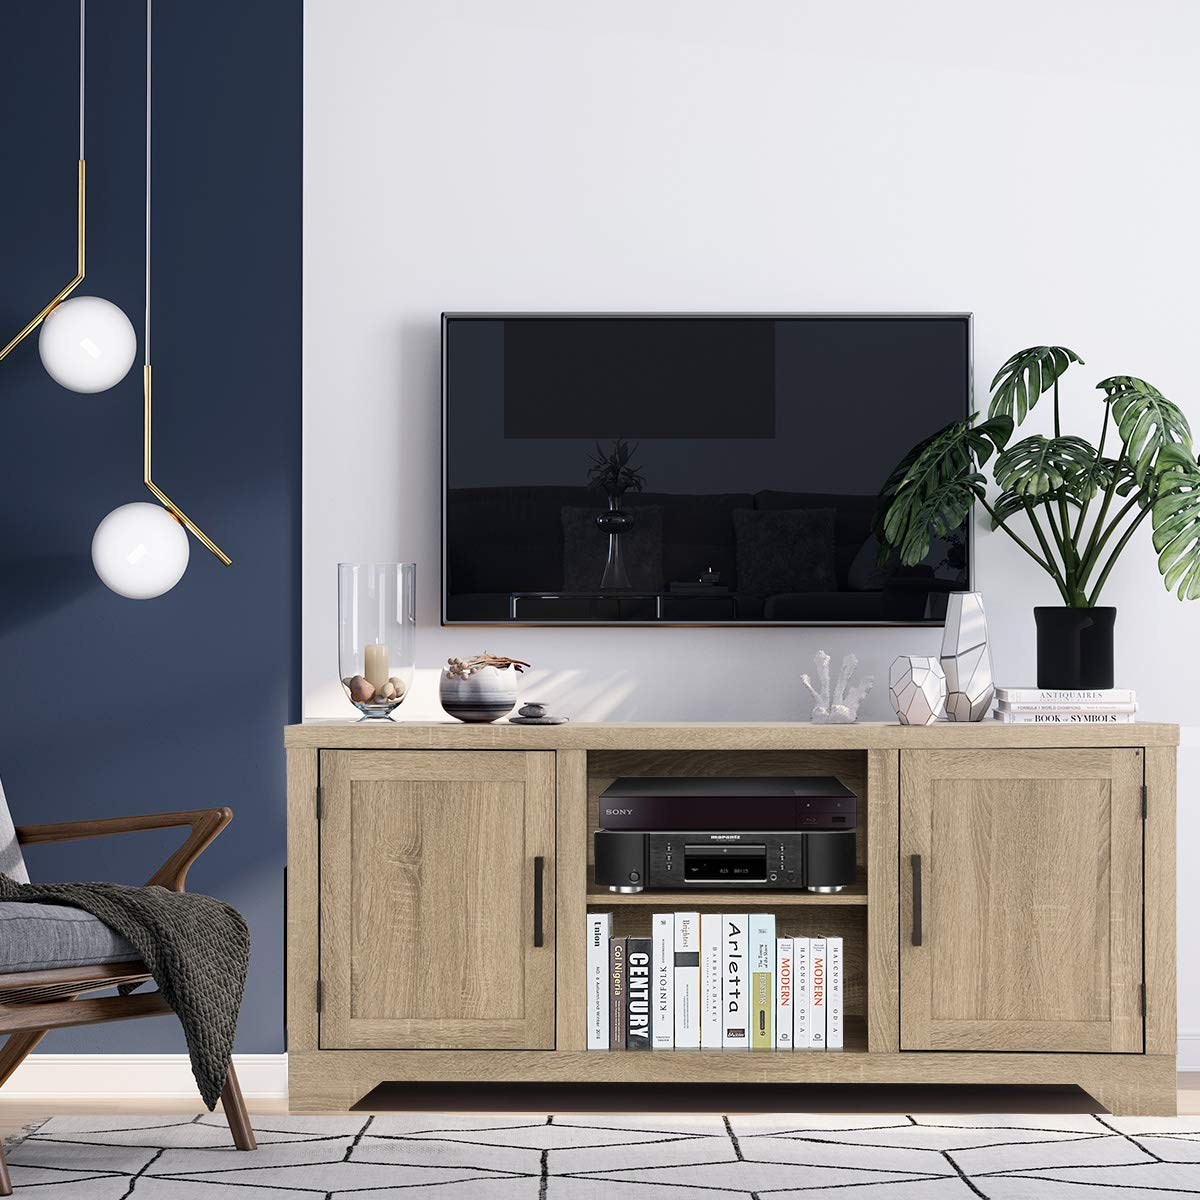 Tangkula 58'' TV Stand Wood Multipurpose Entertainment Media Console Center, Home Living Room Furniture Television Stand with 2 Storage Cabinets and 2 Open Shelves by Tangkula